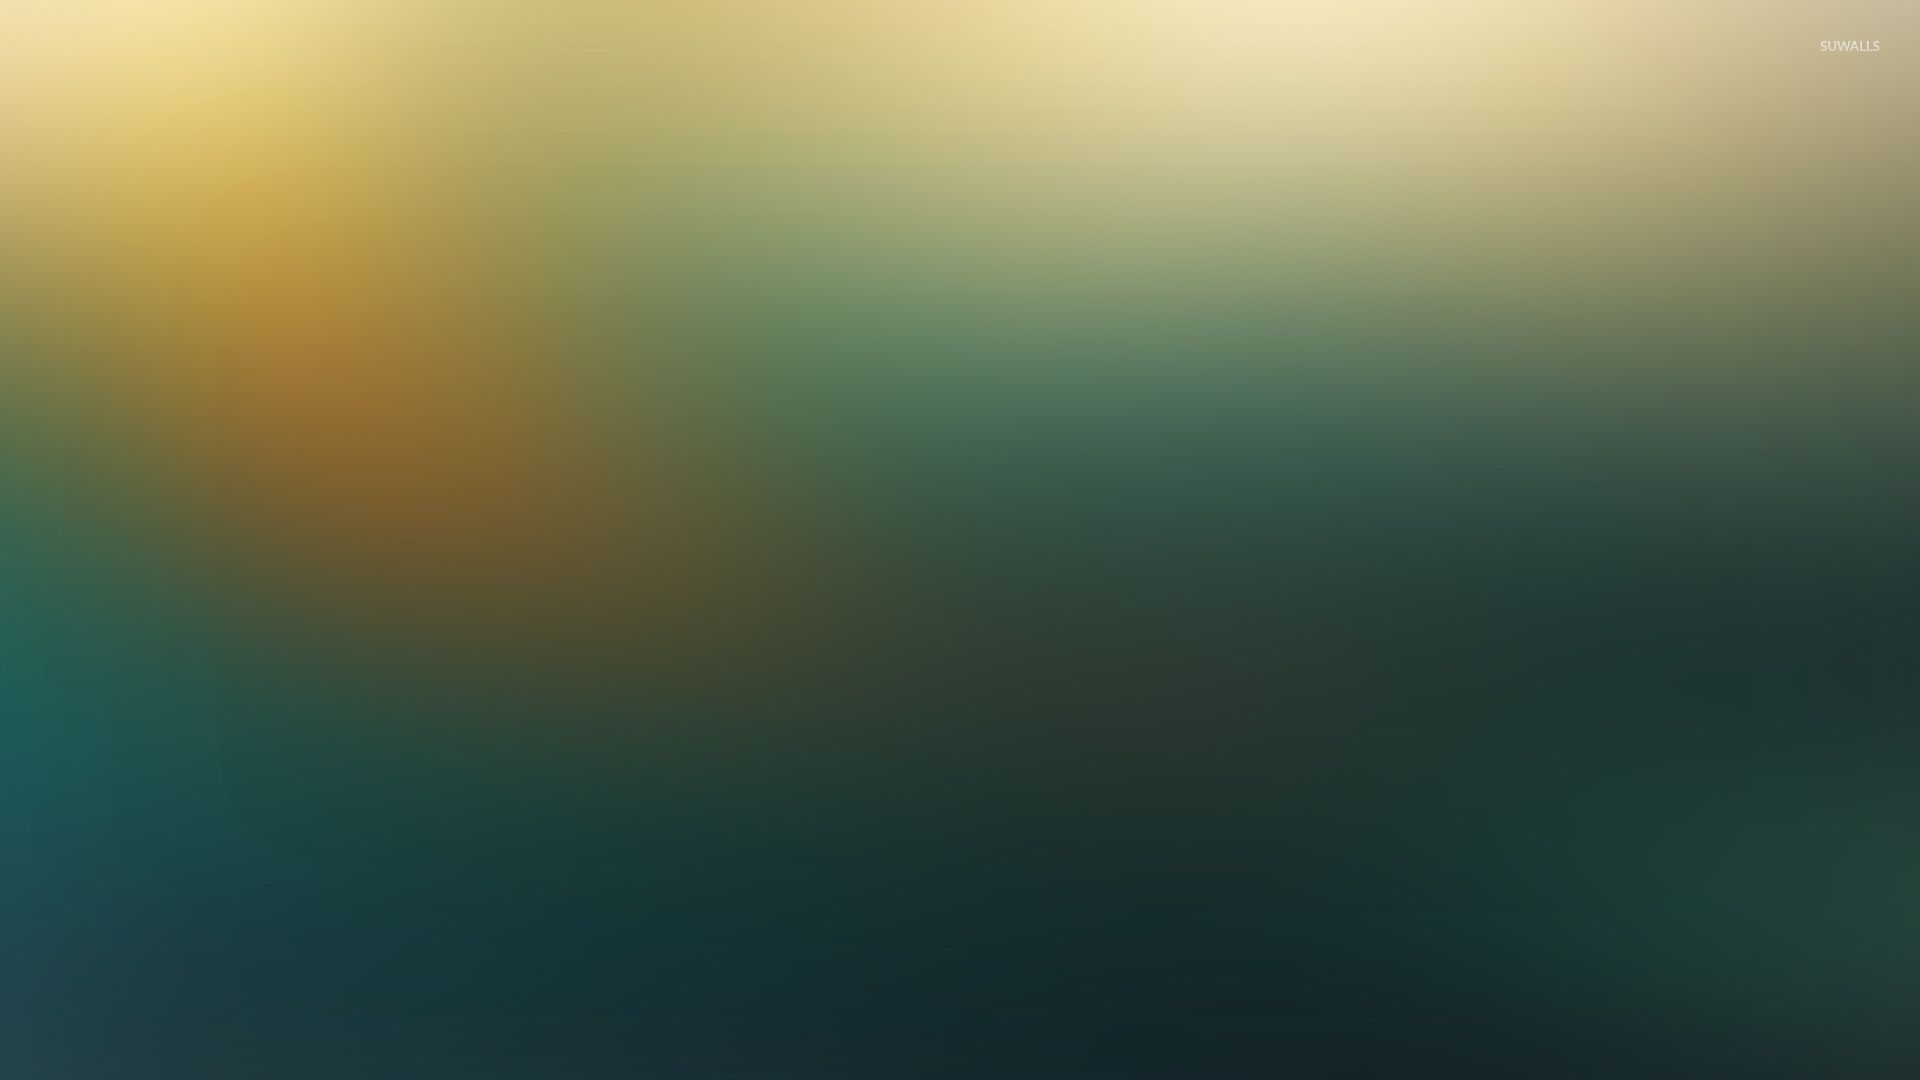 Turquoise Blur Wallpaper Abstract Wallpapers 29626